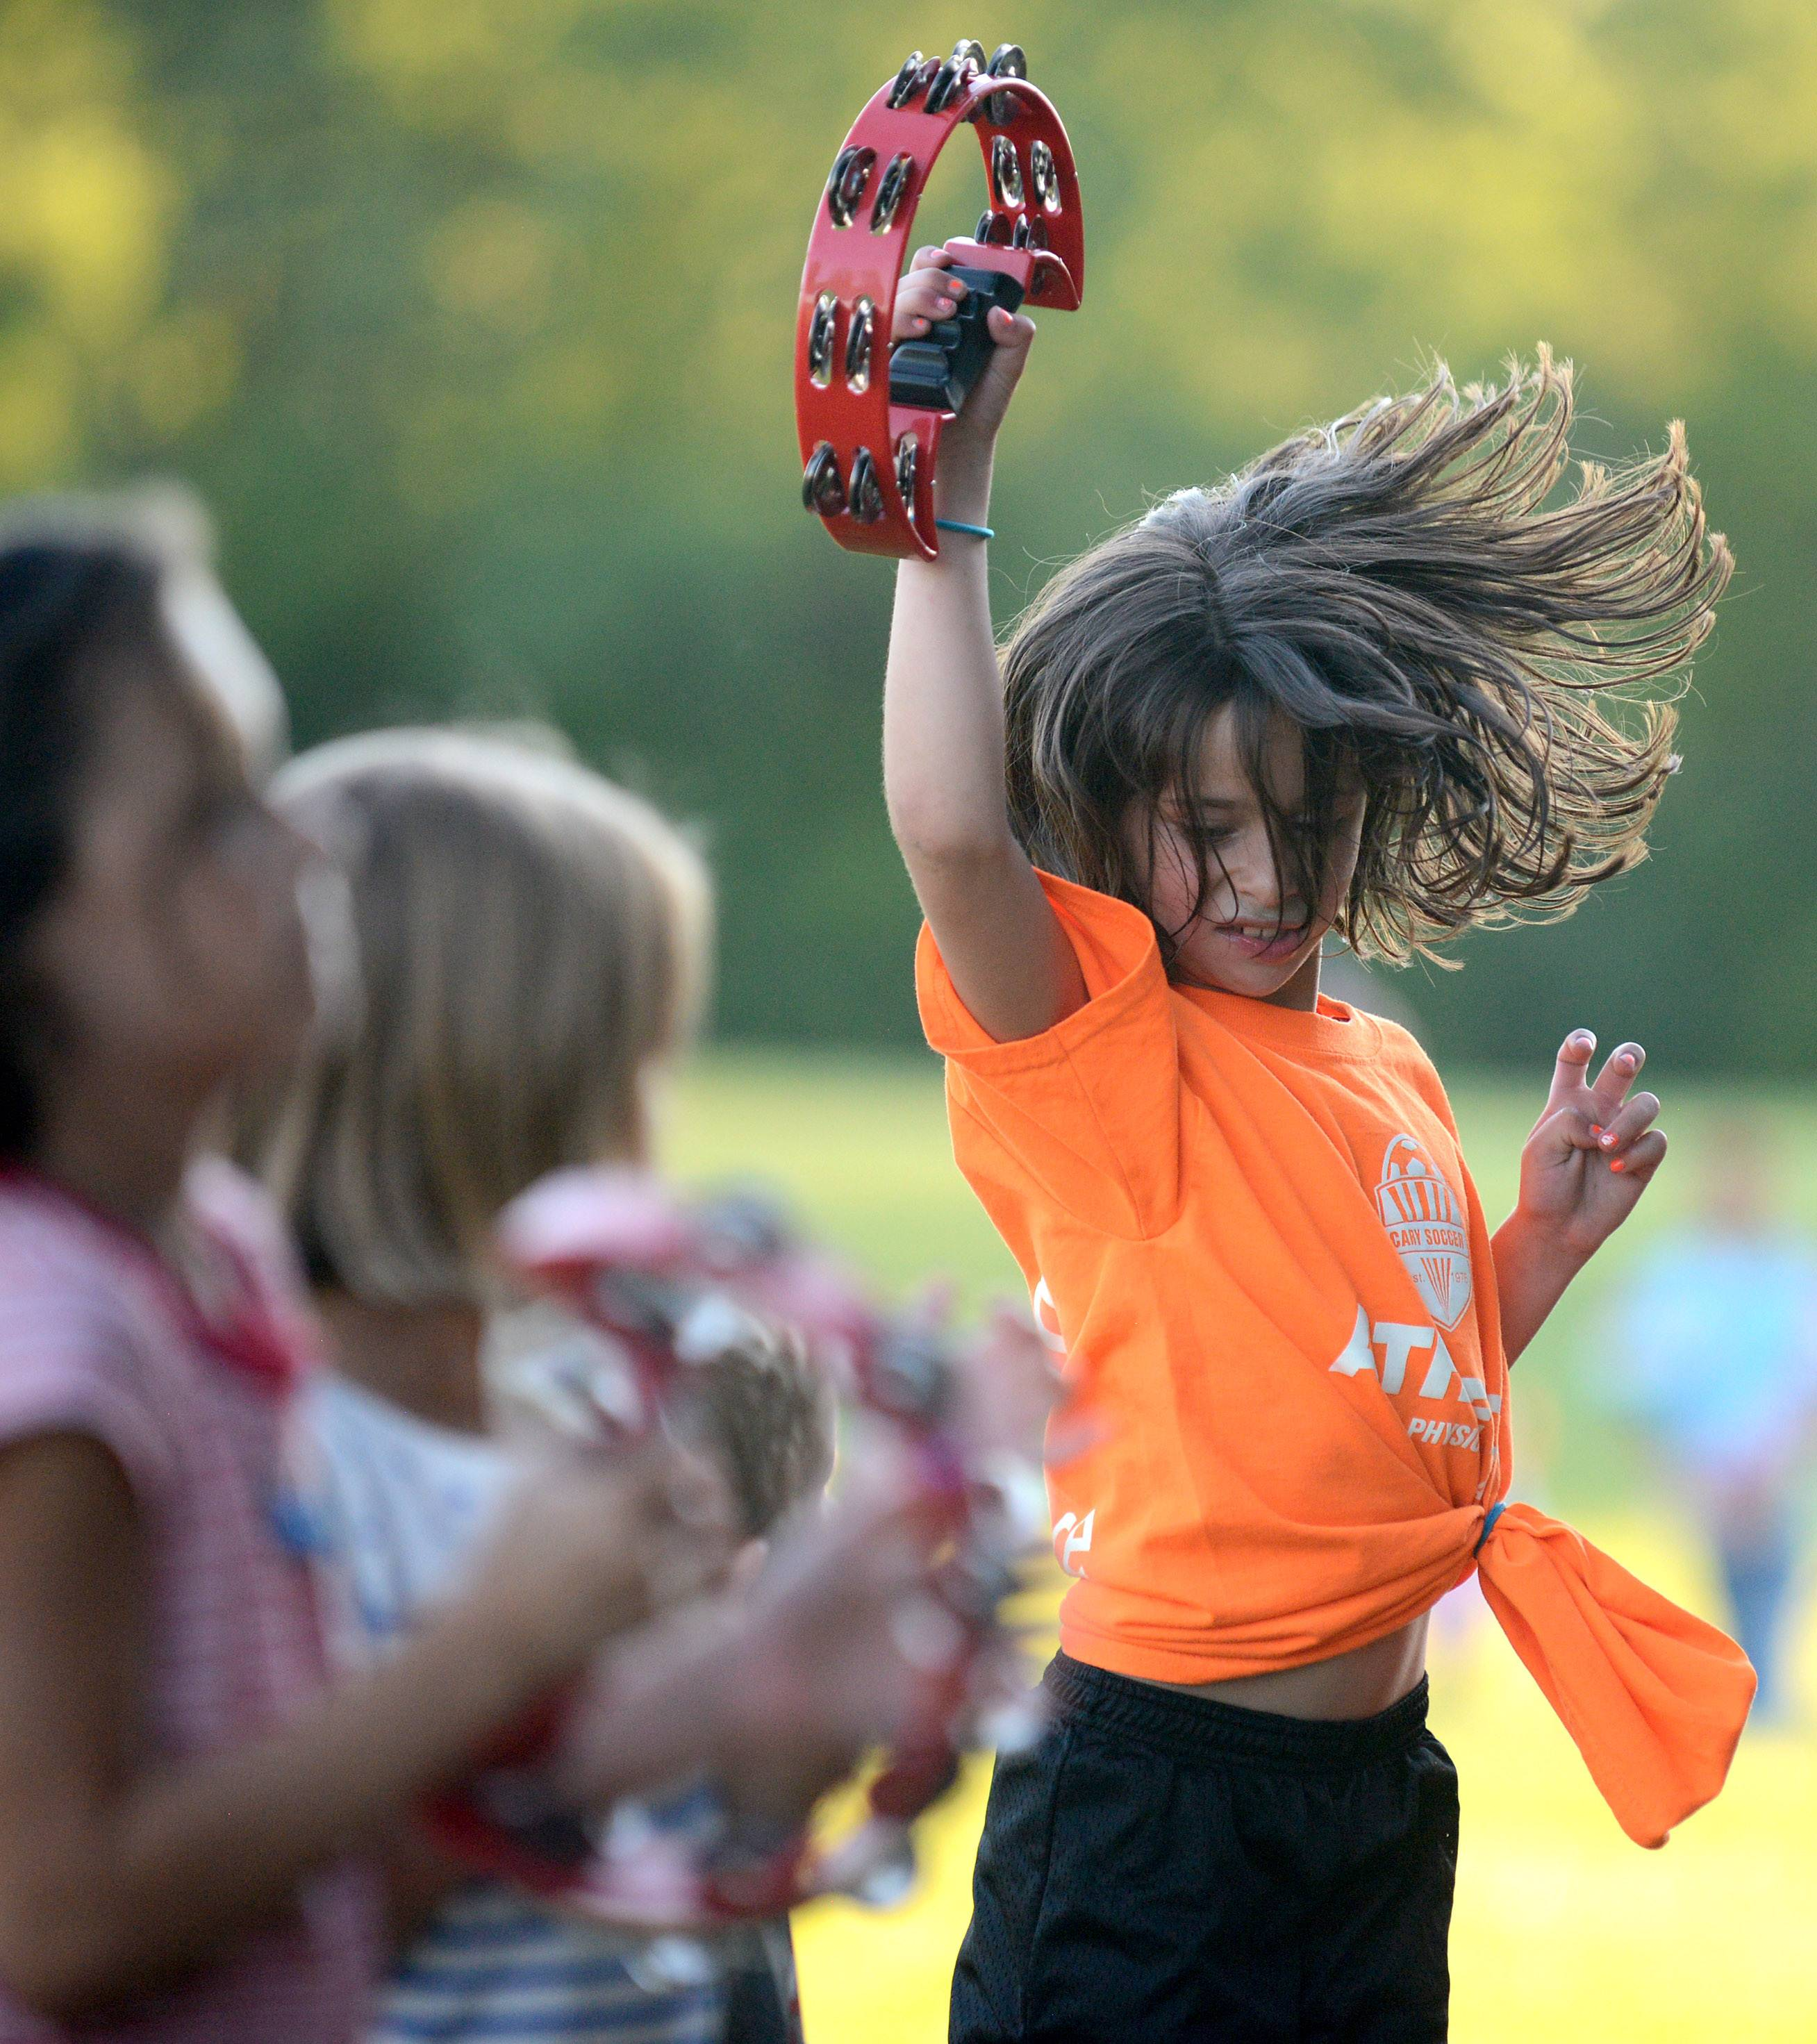 Meredith Levine, 7, of Cary rocks out to what she says is her favorite musical group, Alex and The Allstars, during the Cary Summer Celebration Thursday at Lions Park. The band brought several tambourines so kids could play along with them.